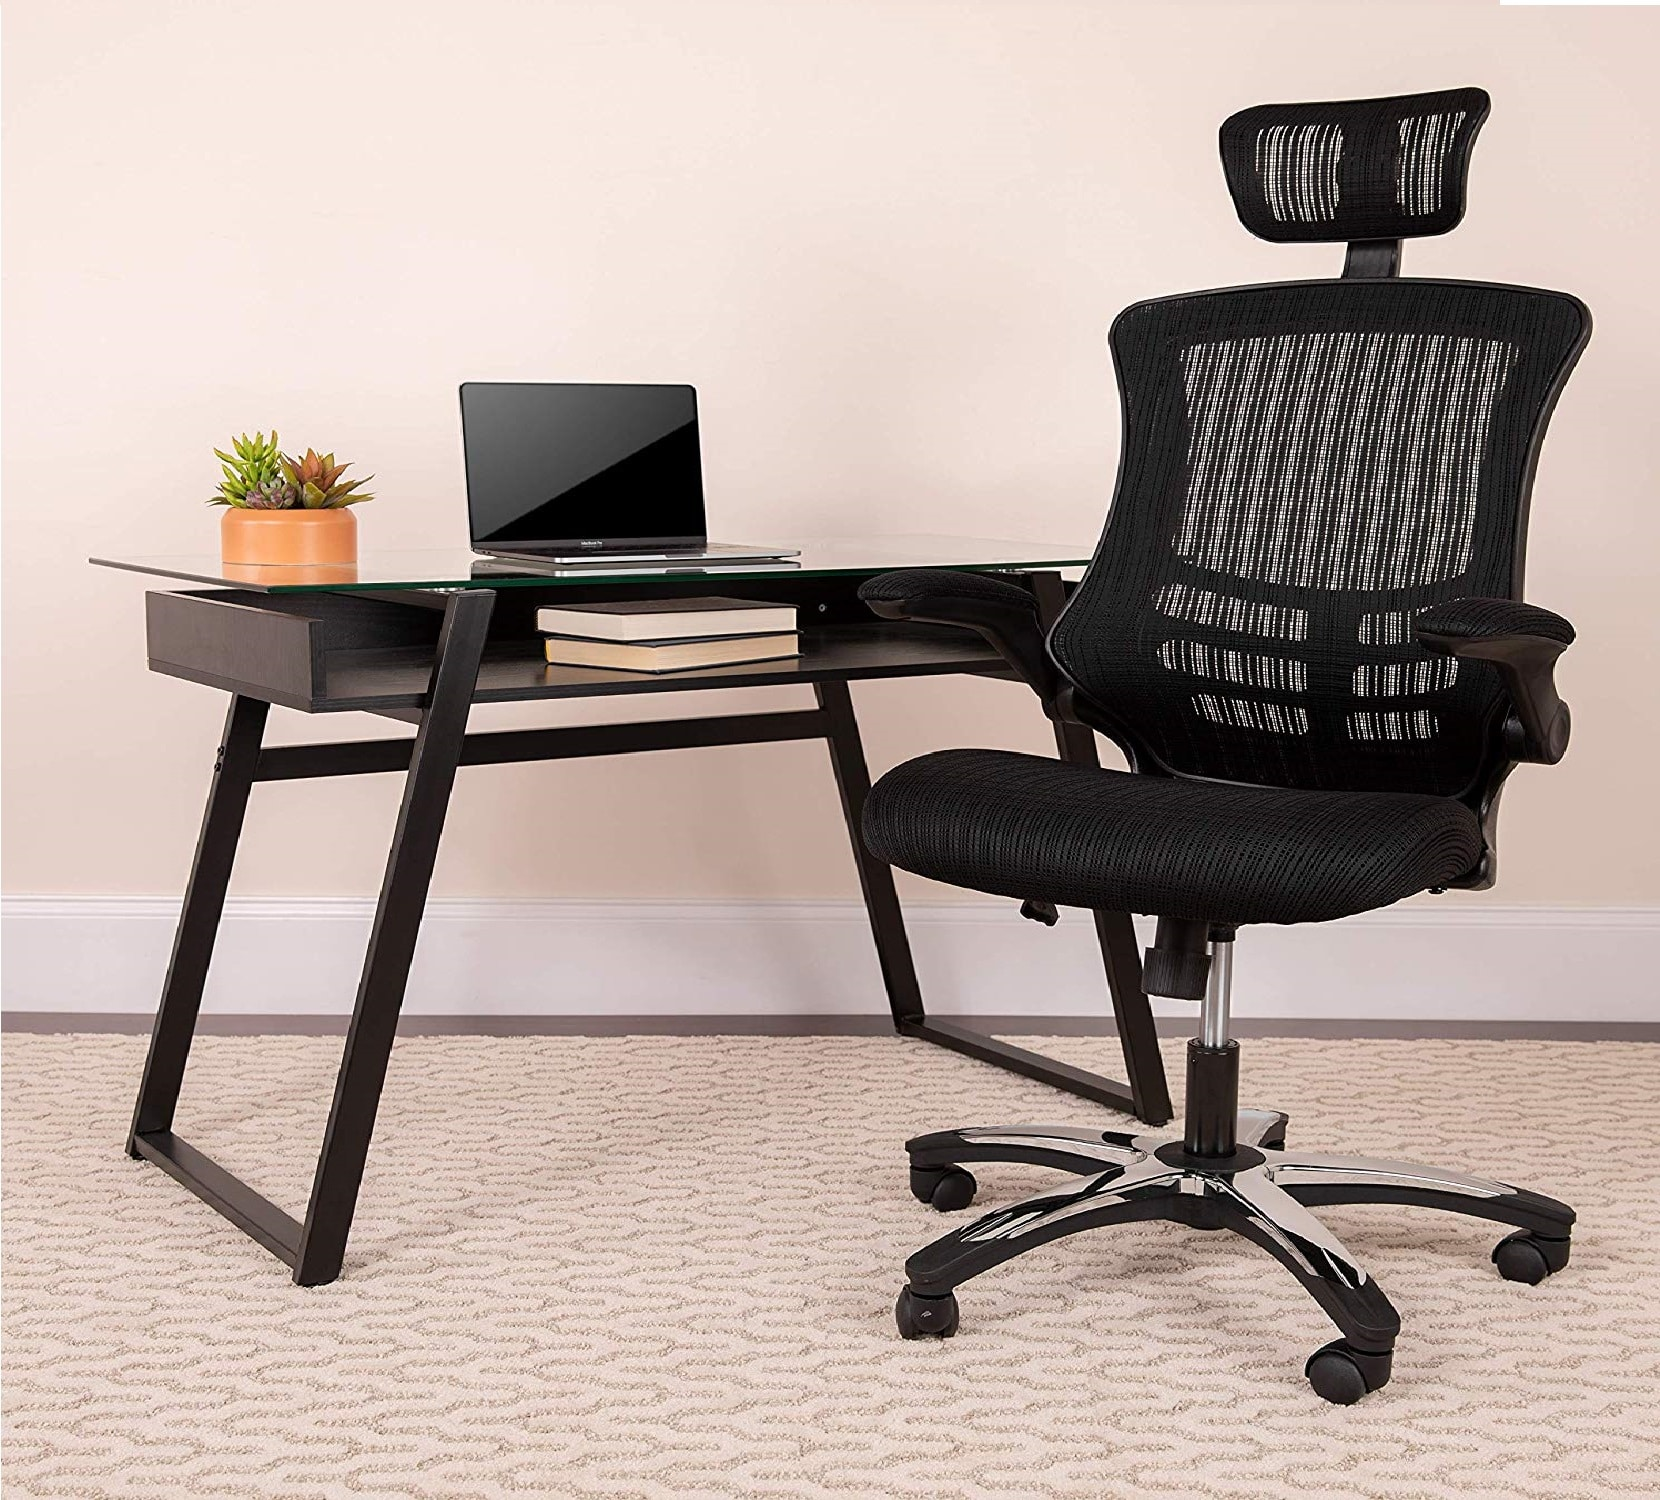 4.Flash Furniture High Back Office Chair High Back Mesh Executive Office and Desk Chair with Wheels and Adjustable Headrest